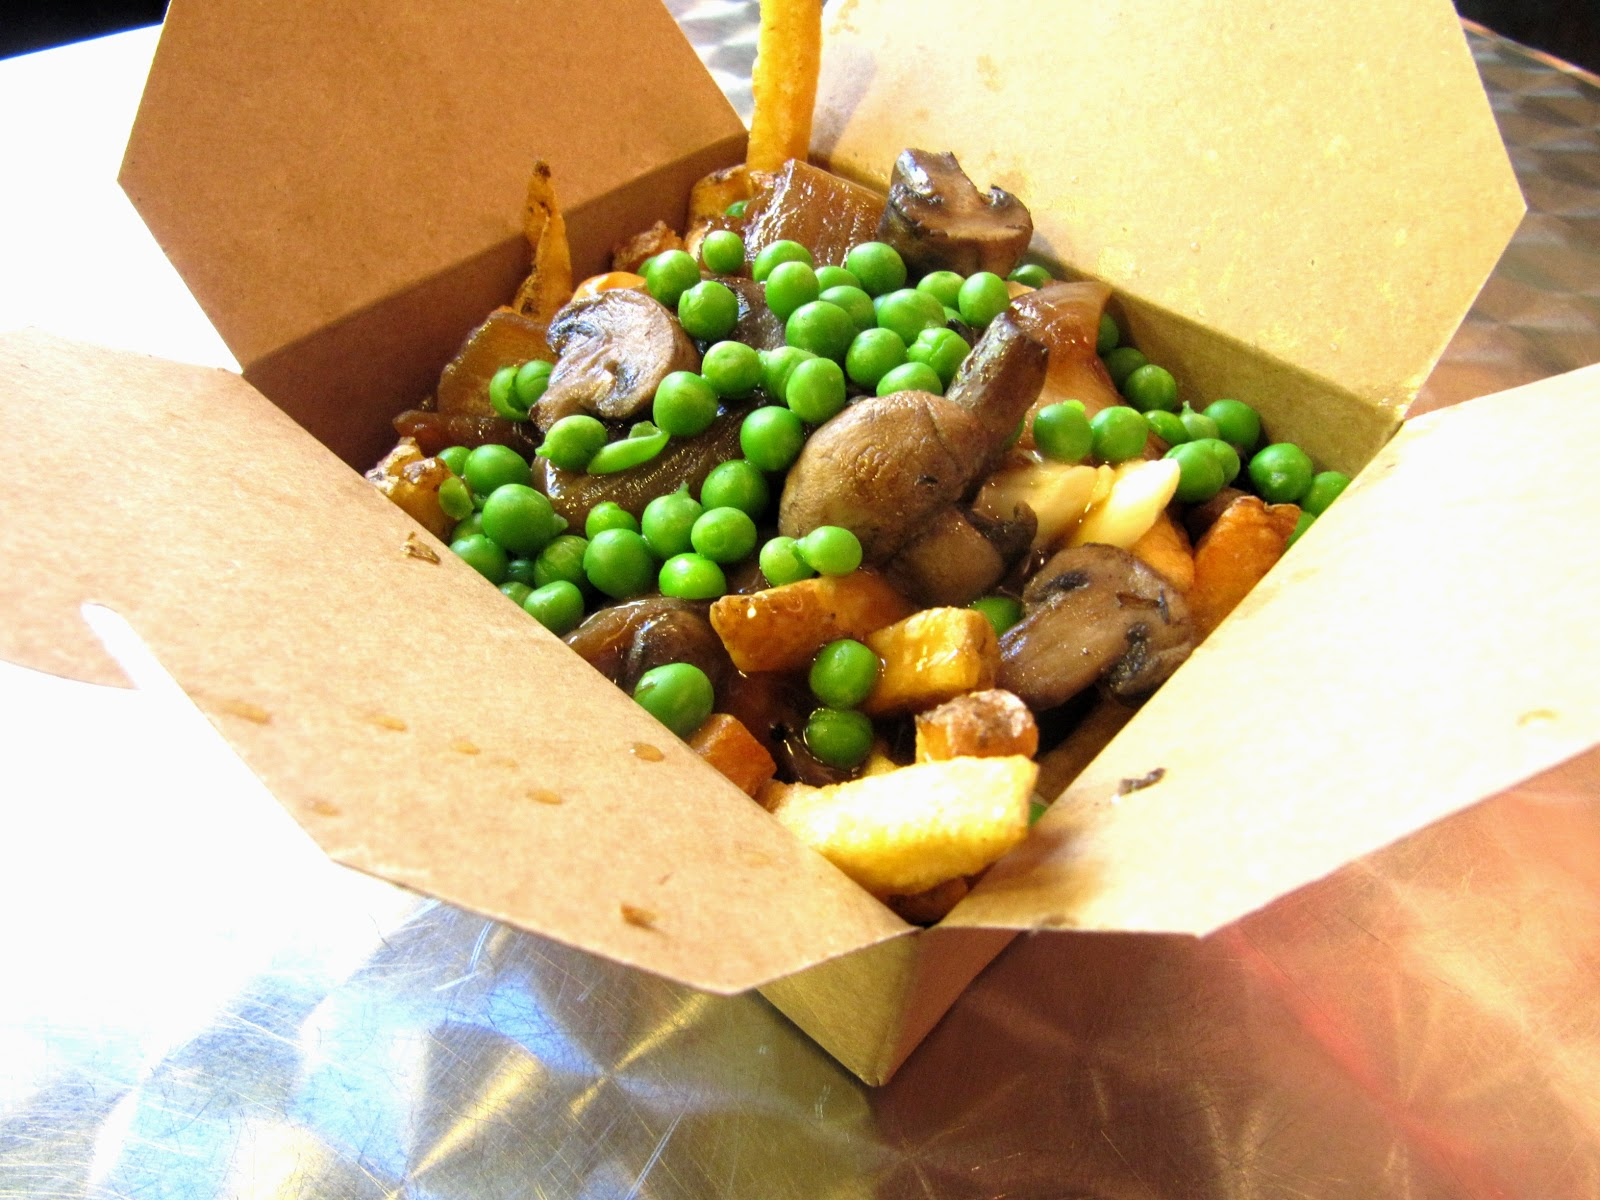 VIMWAC: Eating Vegetarian at Smoke's Poutinerie